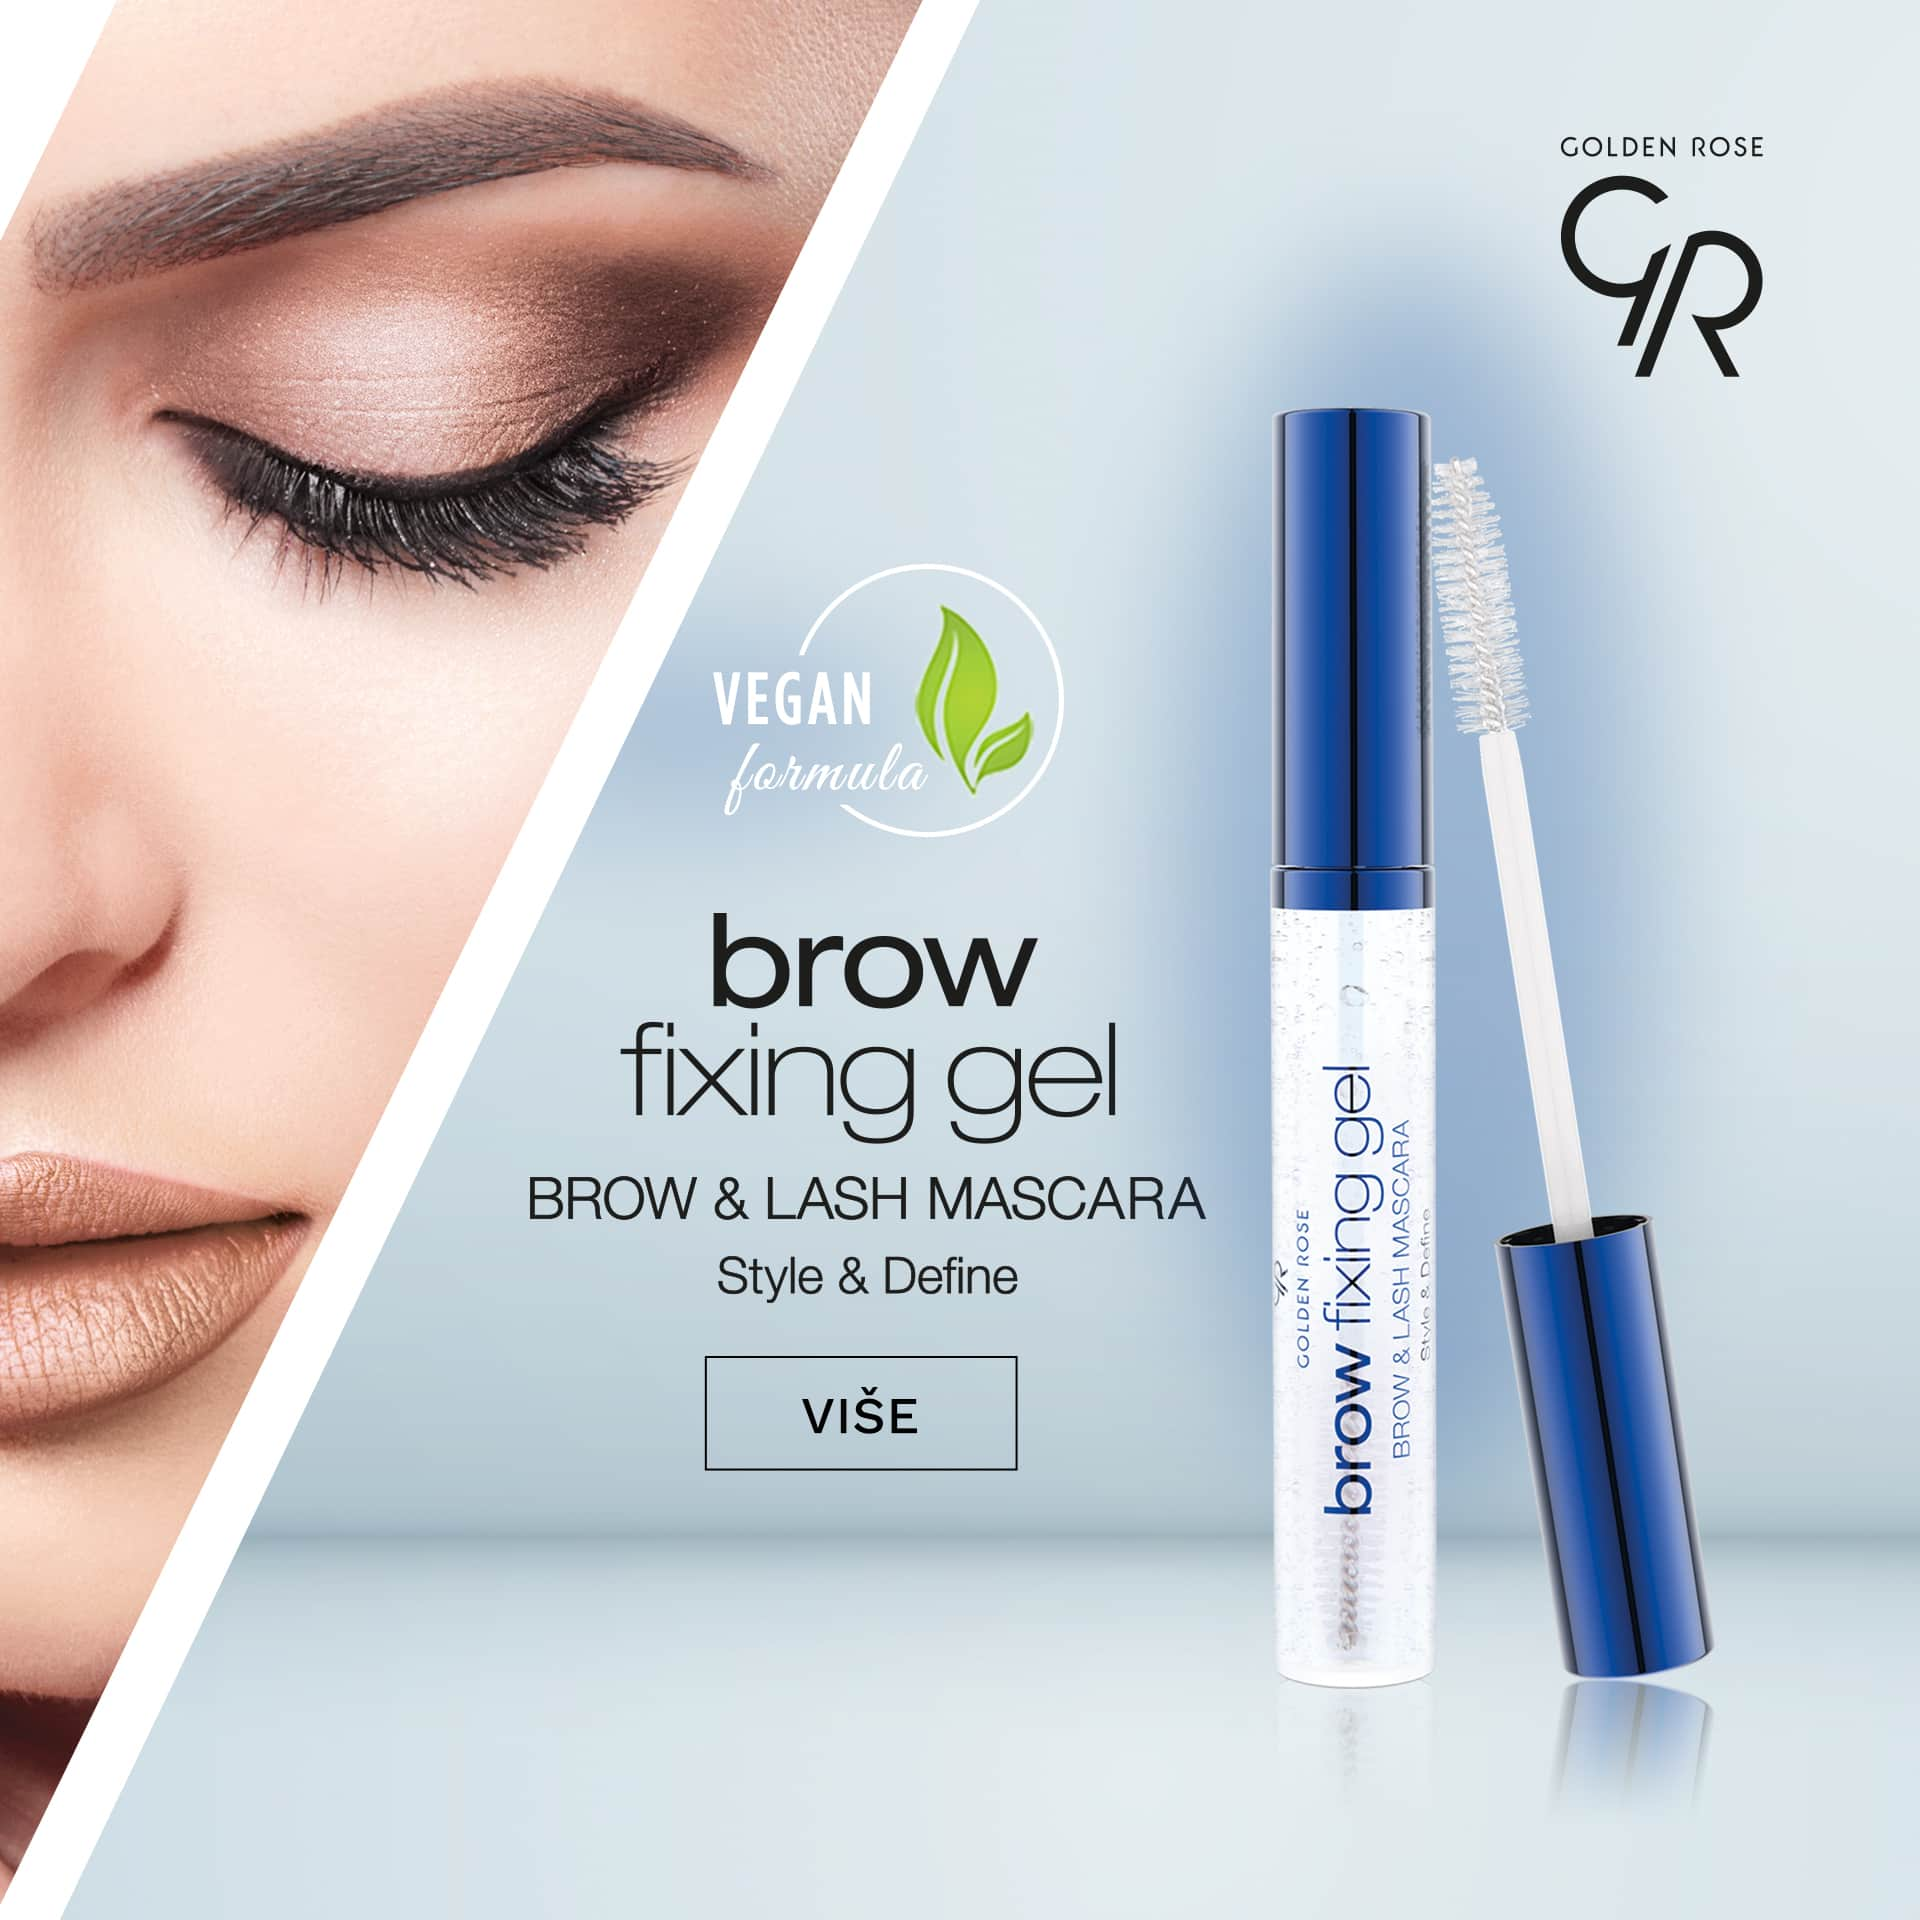 Golden Rose Brow Fixing Gel Brow Lash Mascara mobile